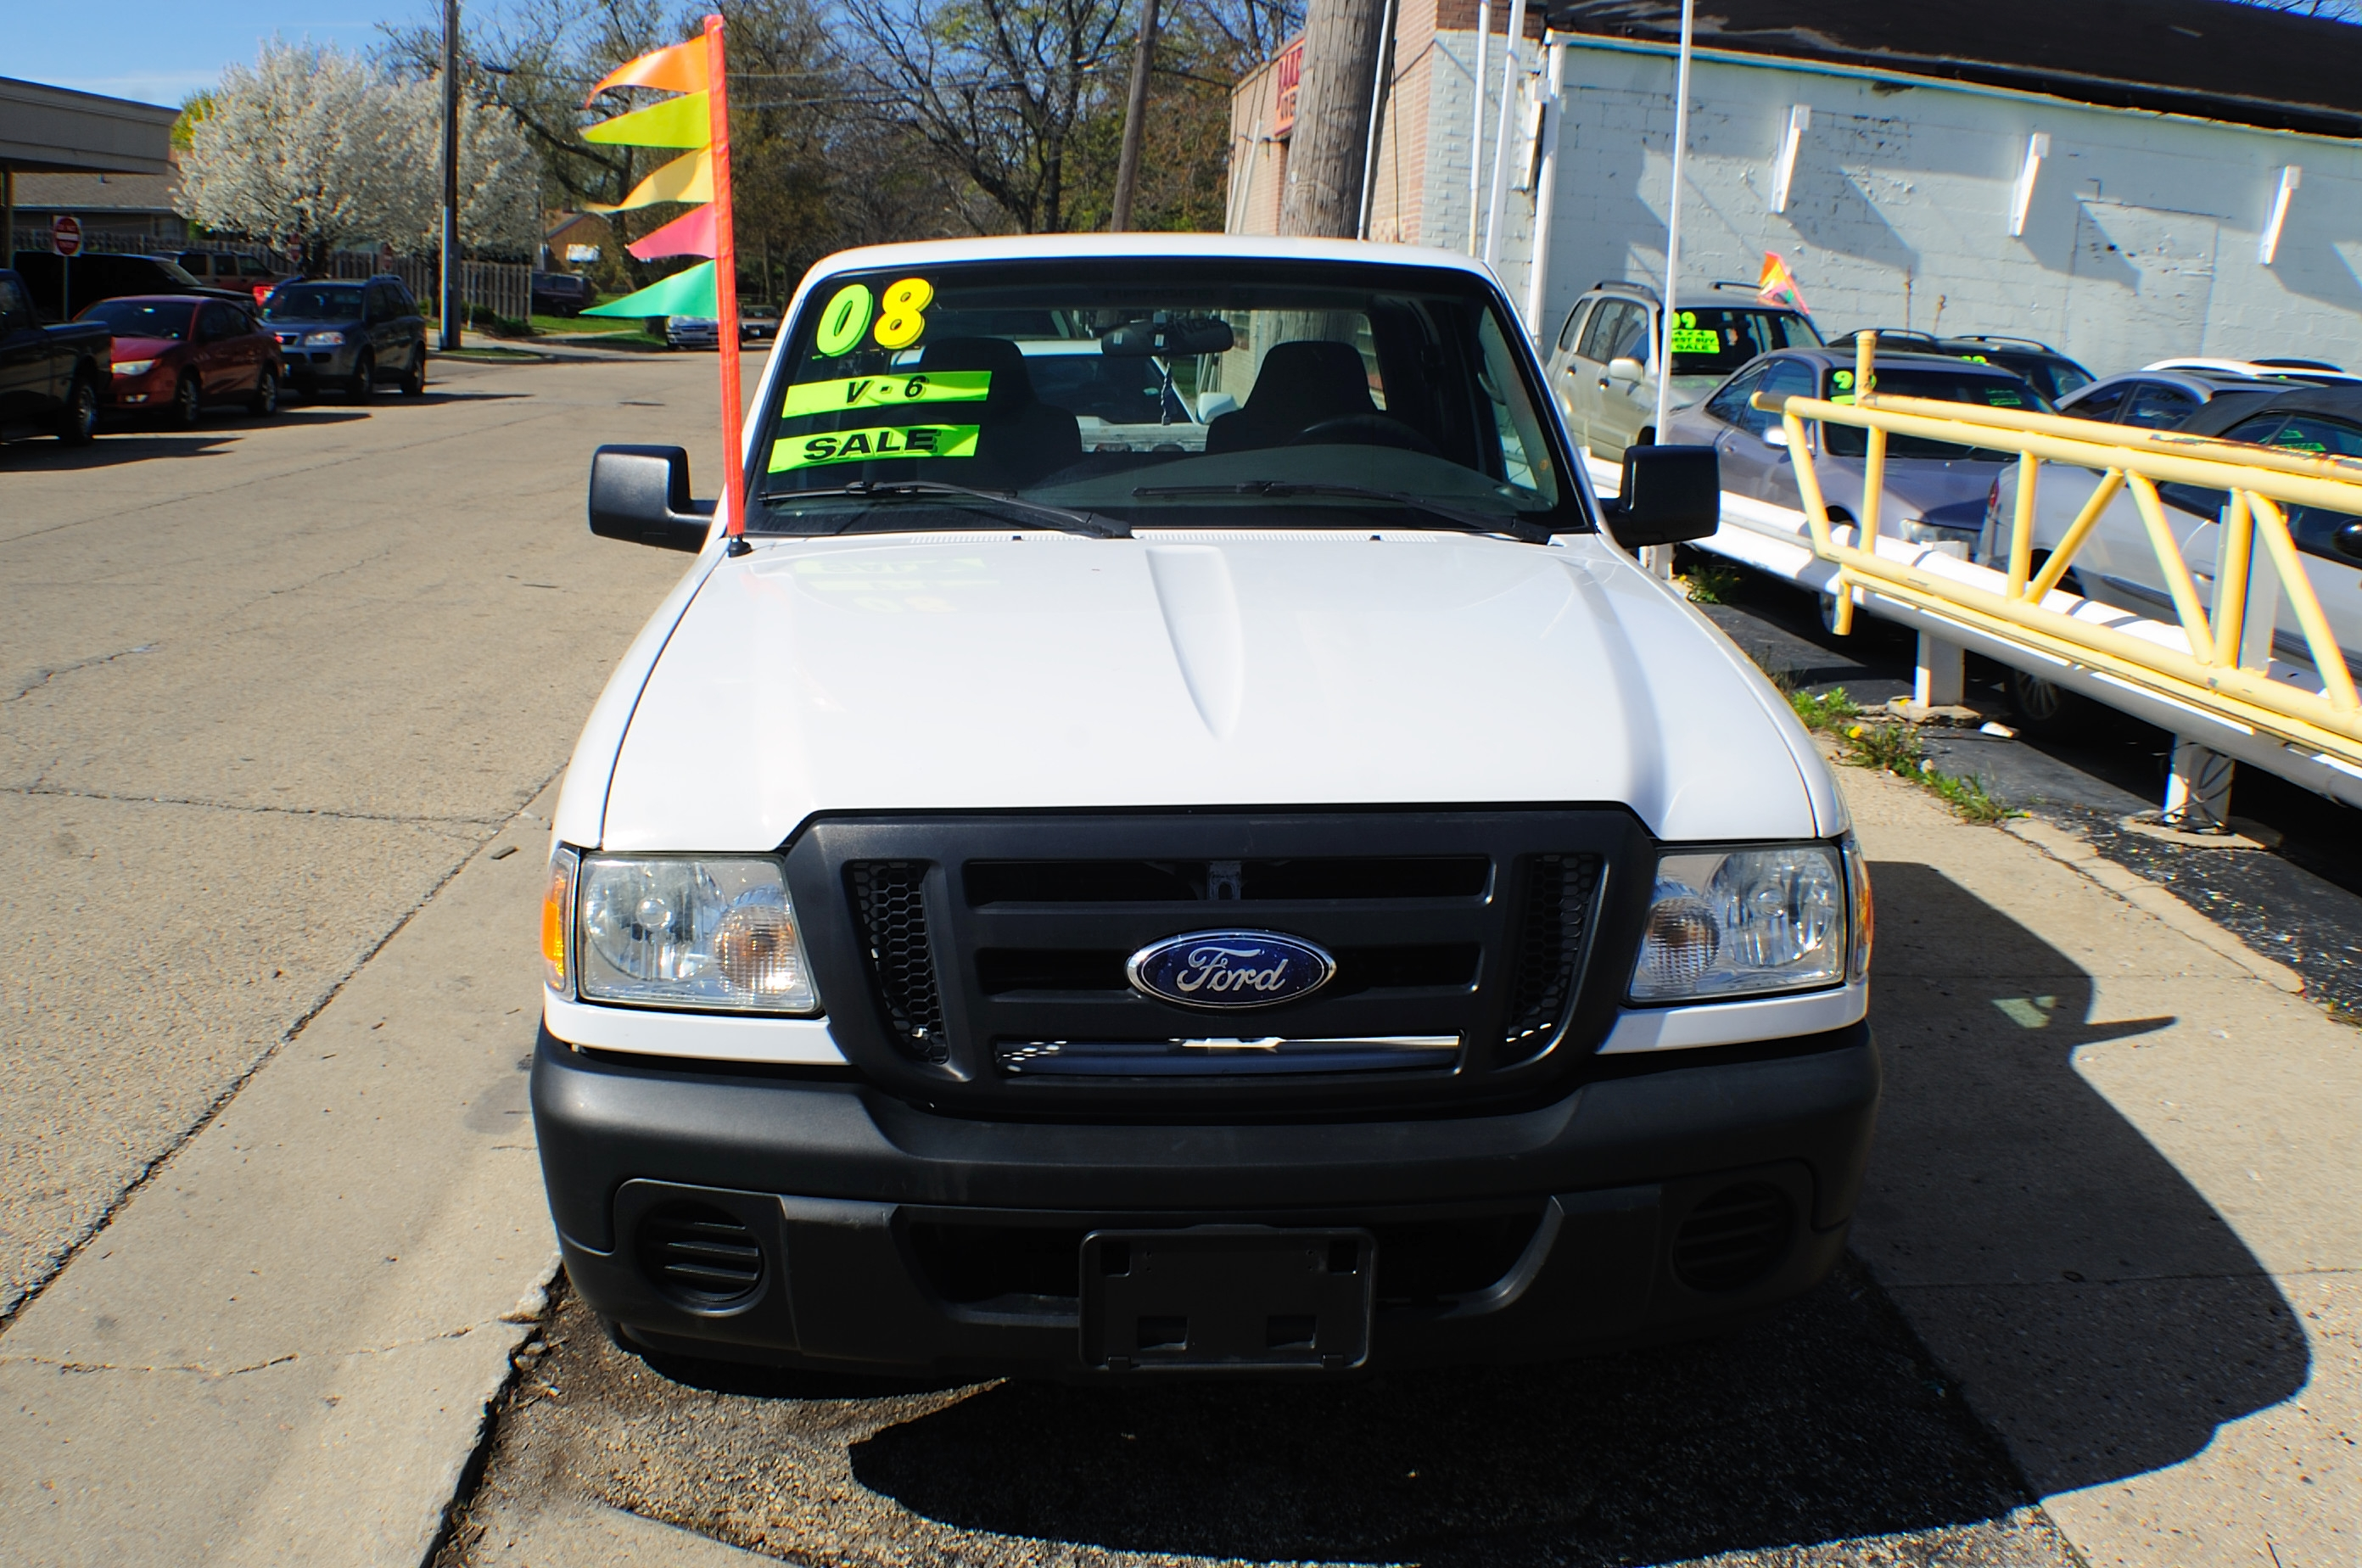 2008 Ford Ranger Ext White Pickup Truck sale Gurnee Kenosha Mchenry Chicago Illinois